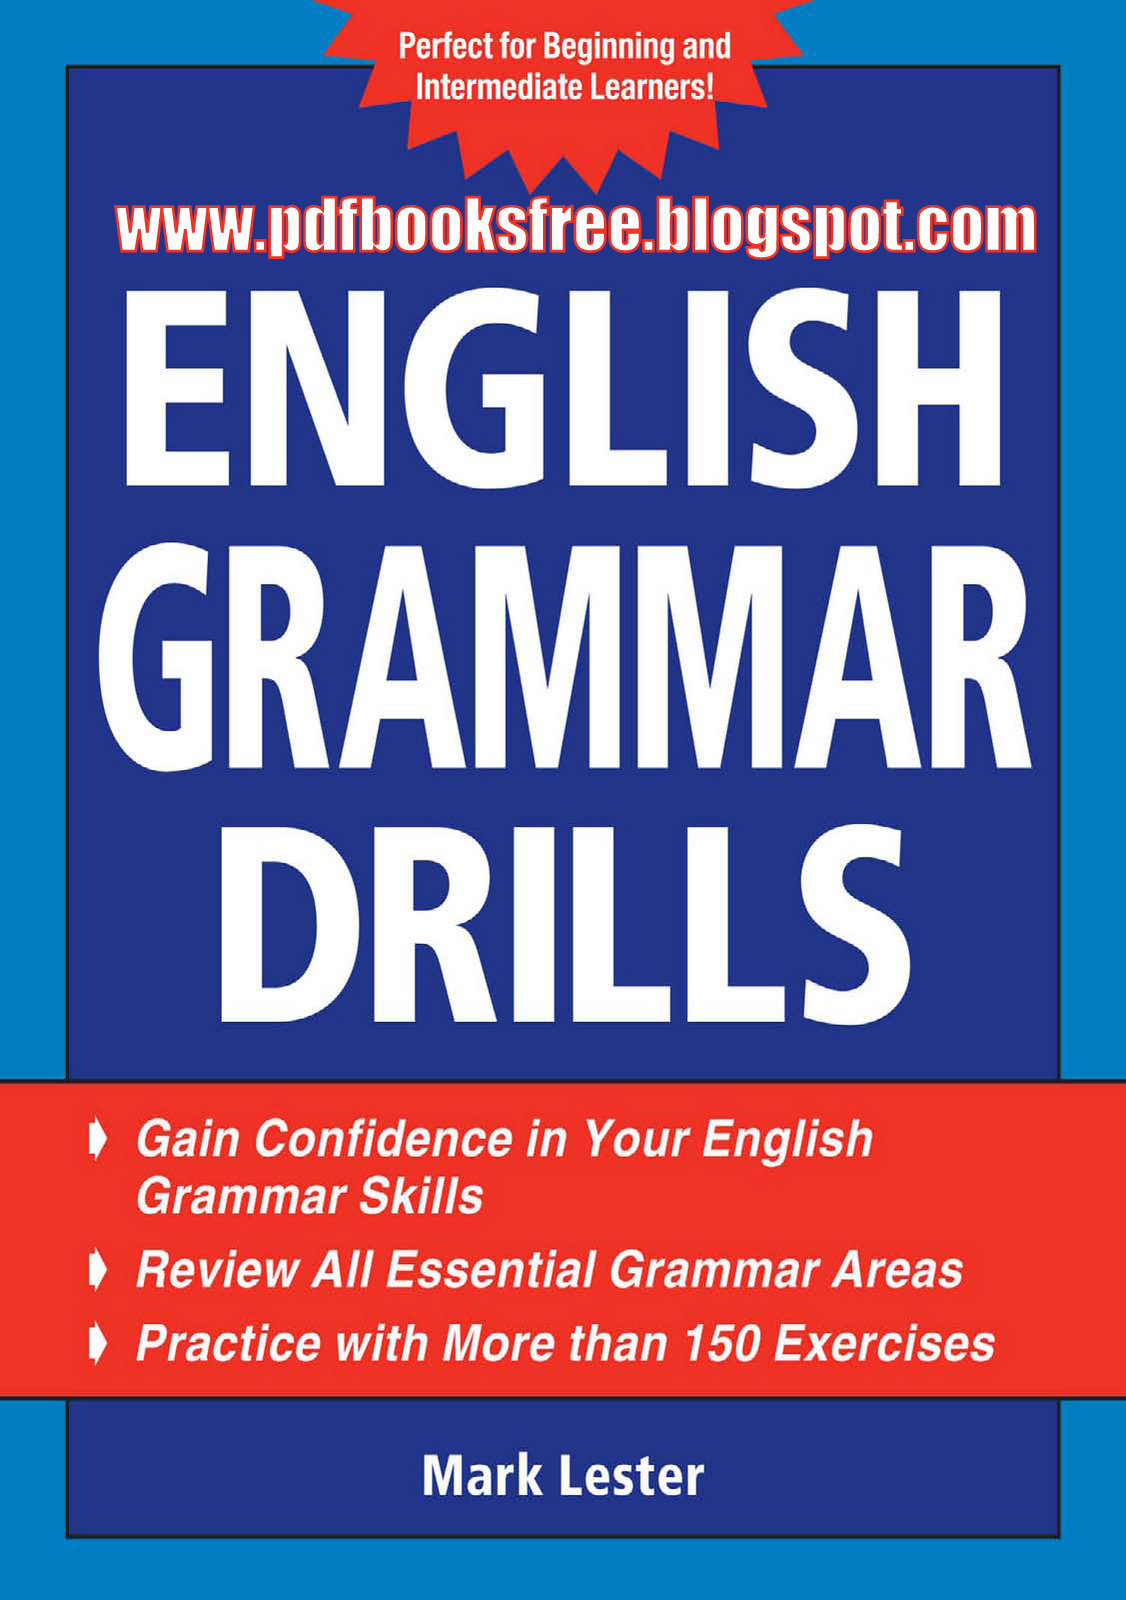 PDF BOOKS ENGLISH PDF DOWNLOAD